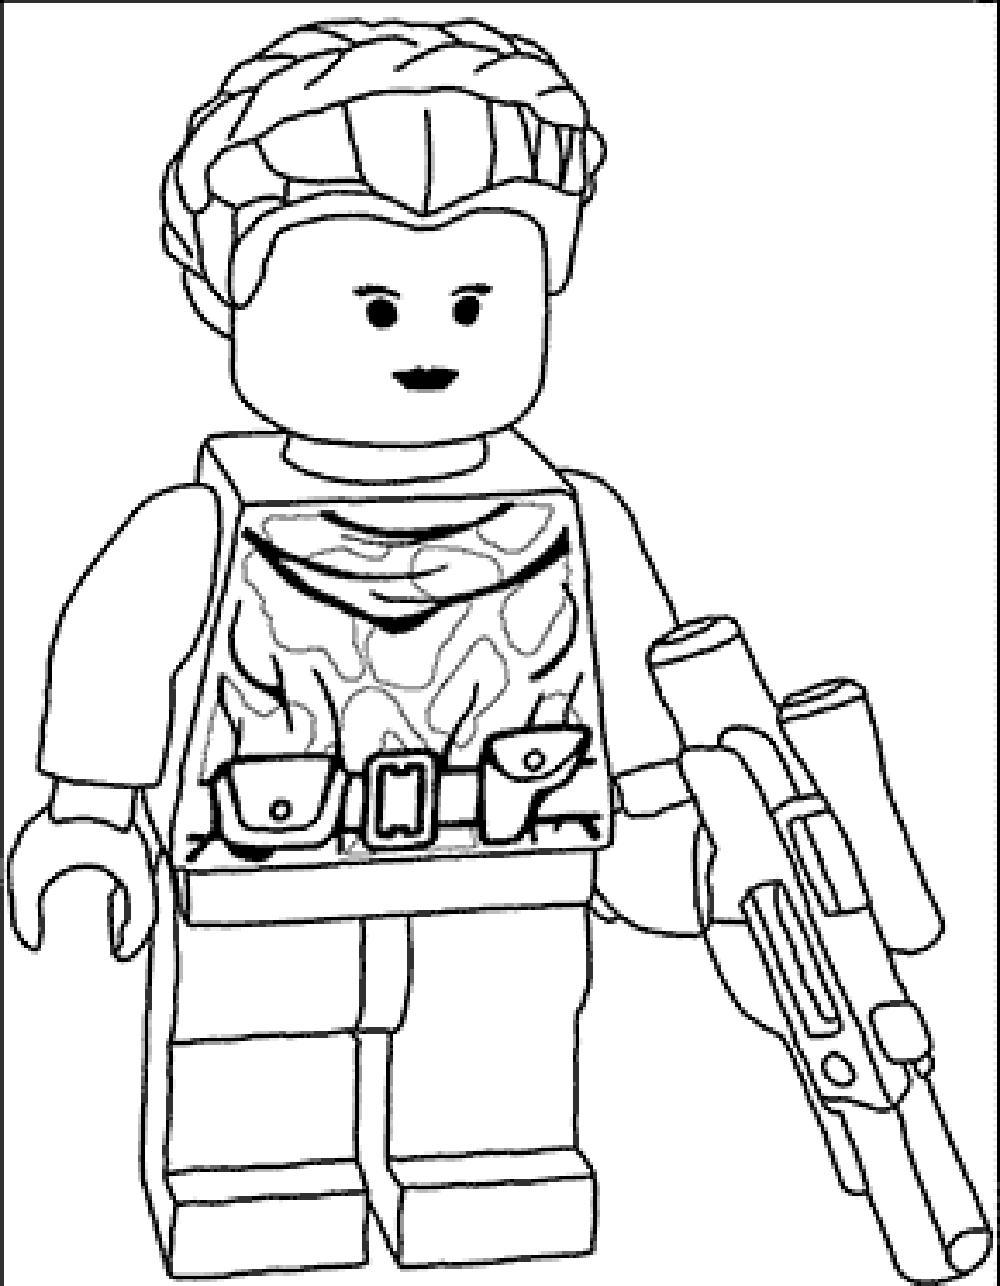 lego star wars printable coloring pages the best free legos coloring page images download from 69 star pages coloring wars lego printable